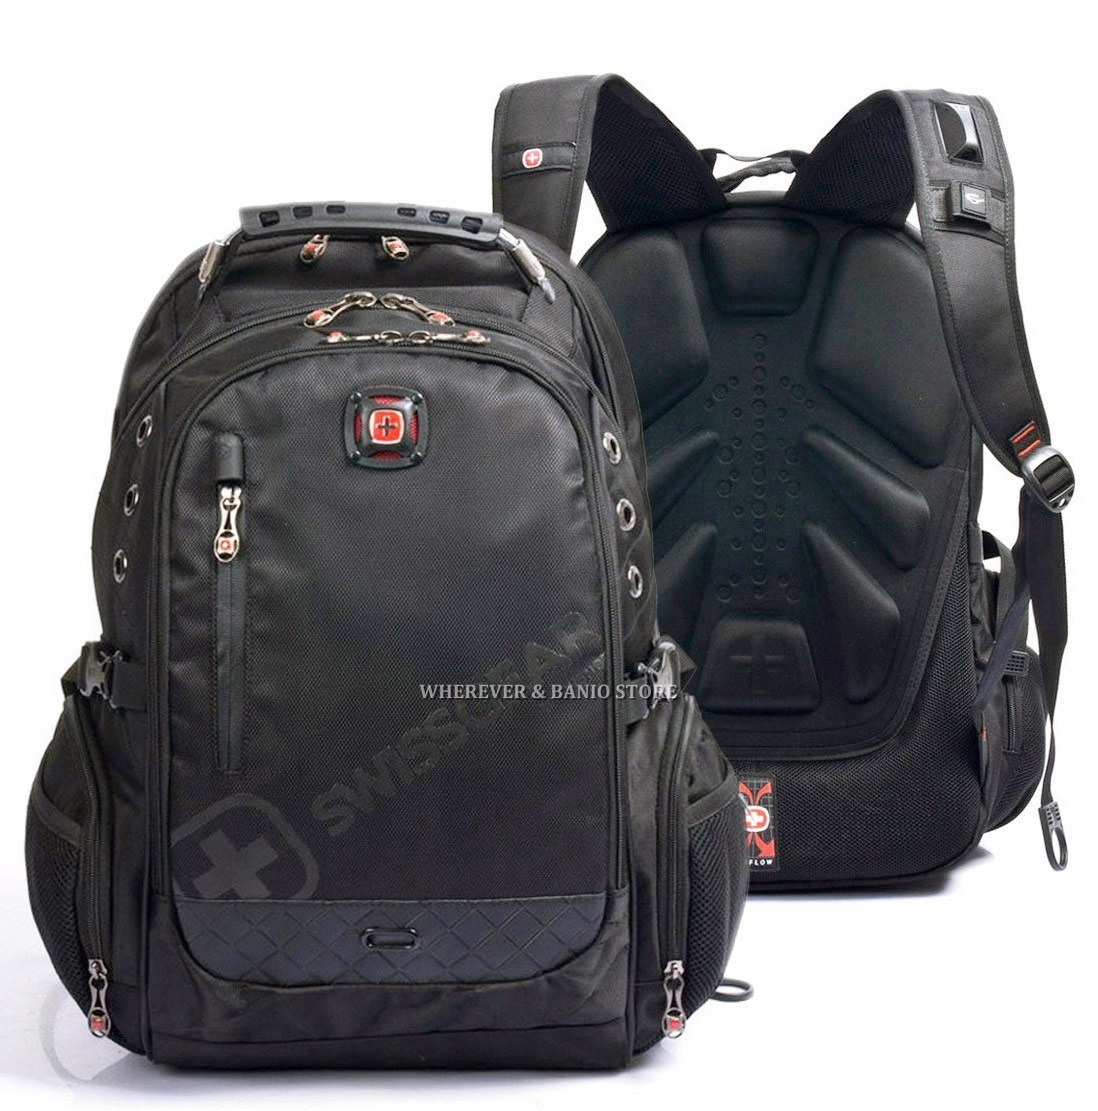 Backpacks Swiss Gear 48qSuUCk